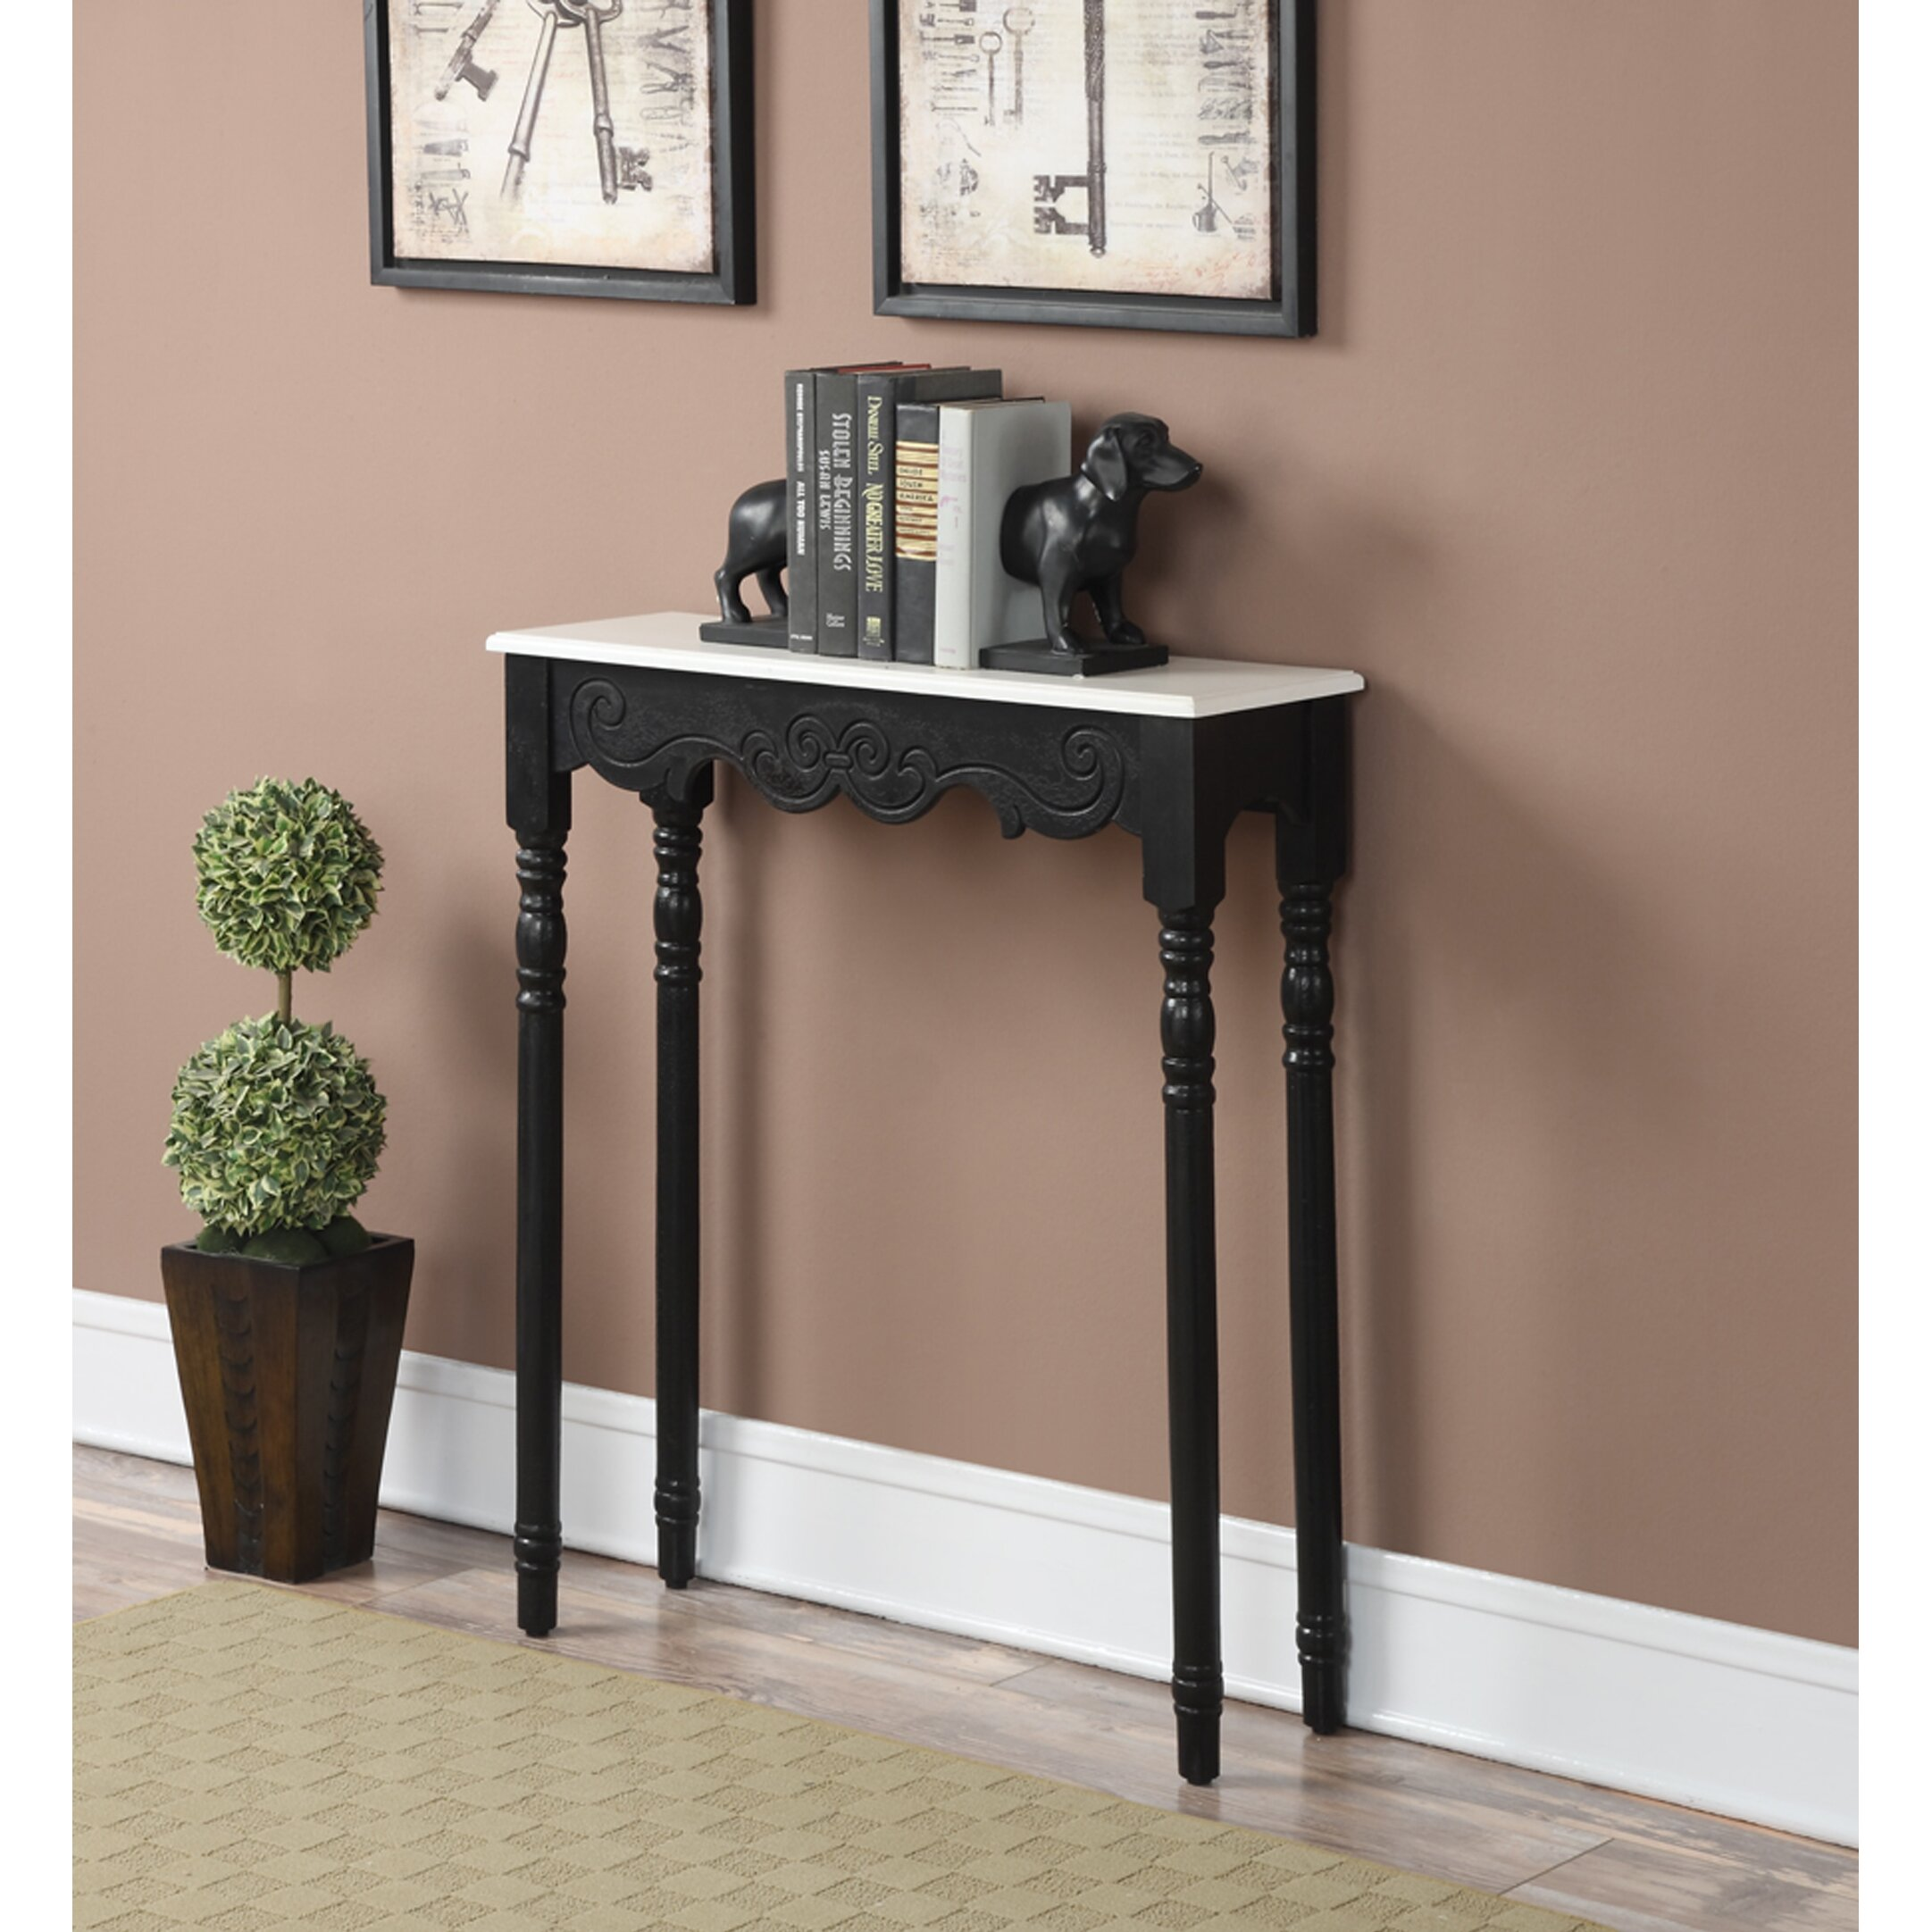 Charlton Home Hobart Console Table amp Reviews Wayfair : French Provence Monaco Console Table CHLH1565 from www.wayfair.com size 2163 x 2163 jpeg 540kB